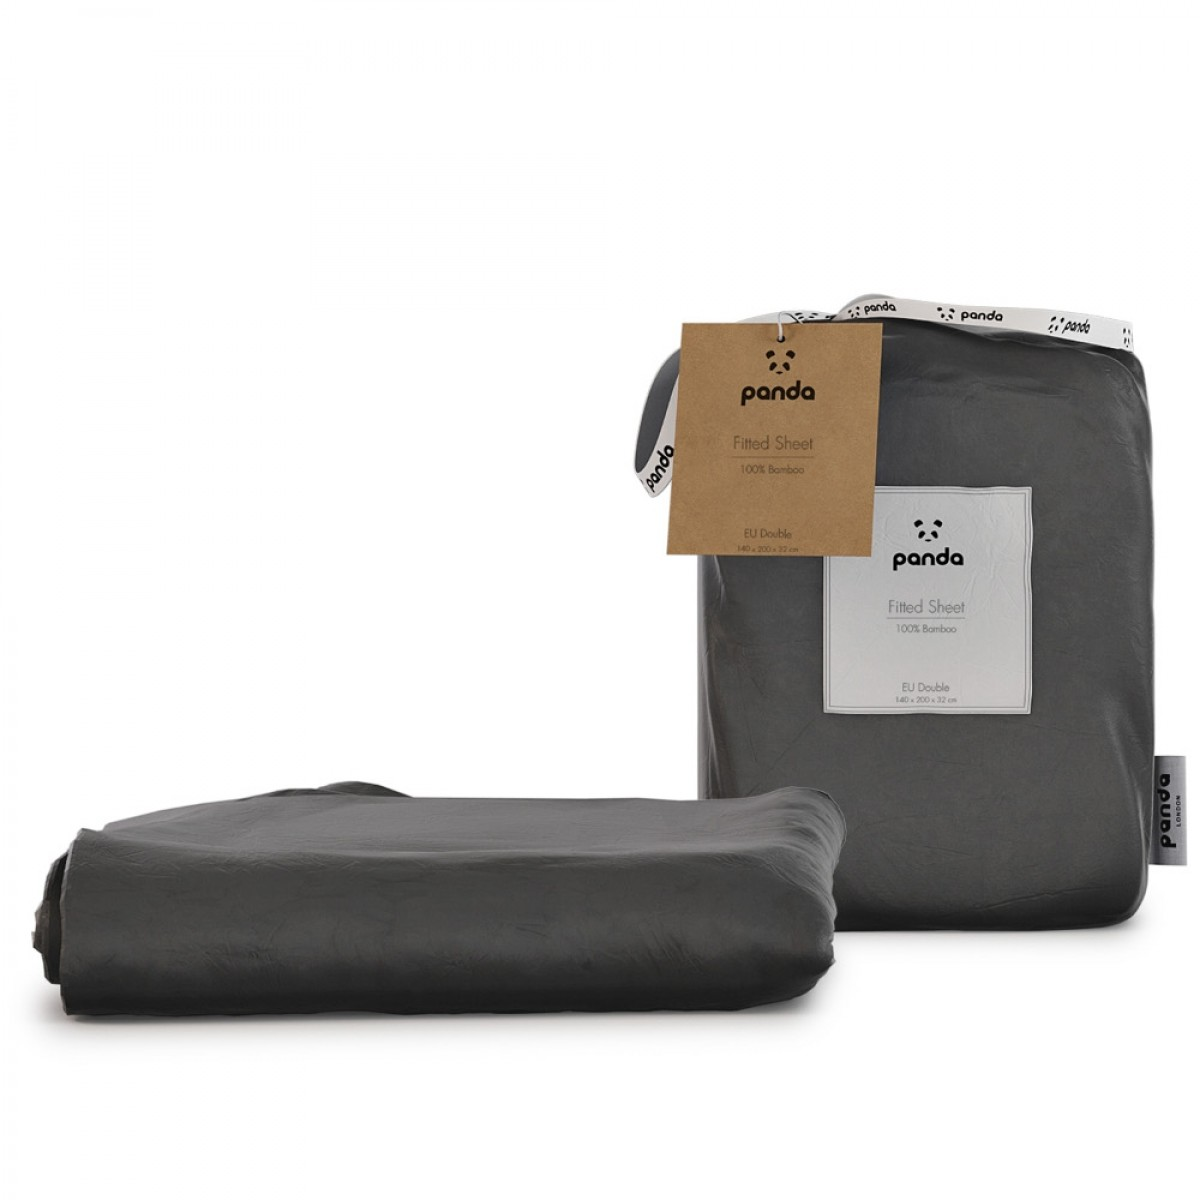 Panda 100% Bamboo Fitted Sheet - Urban Grey